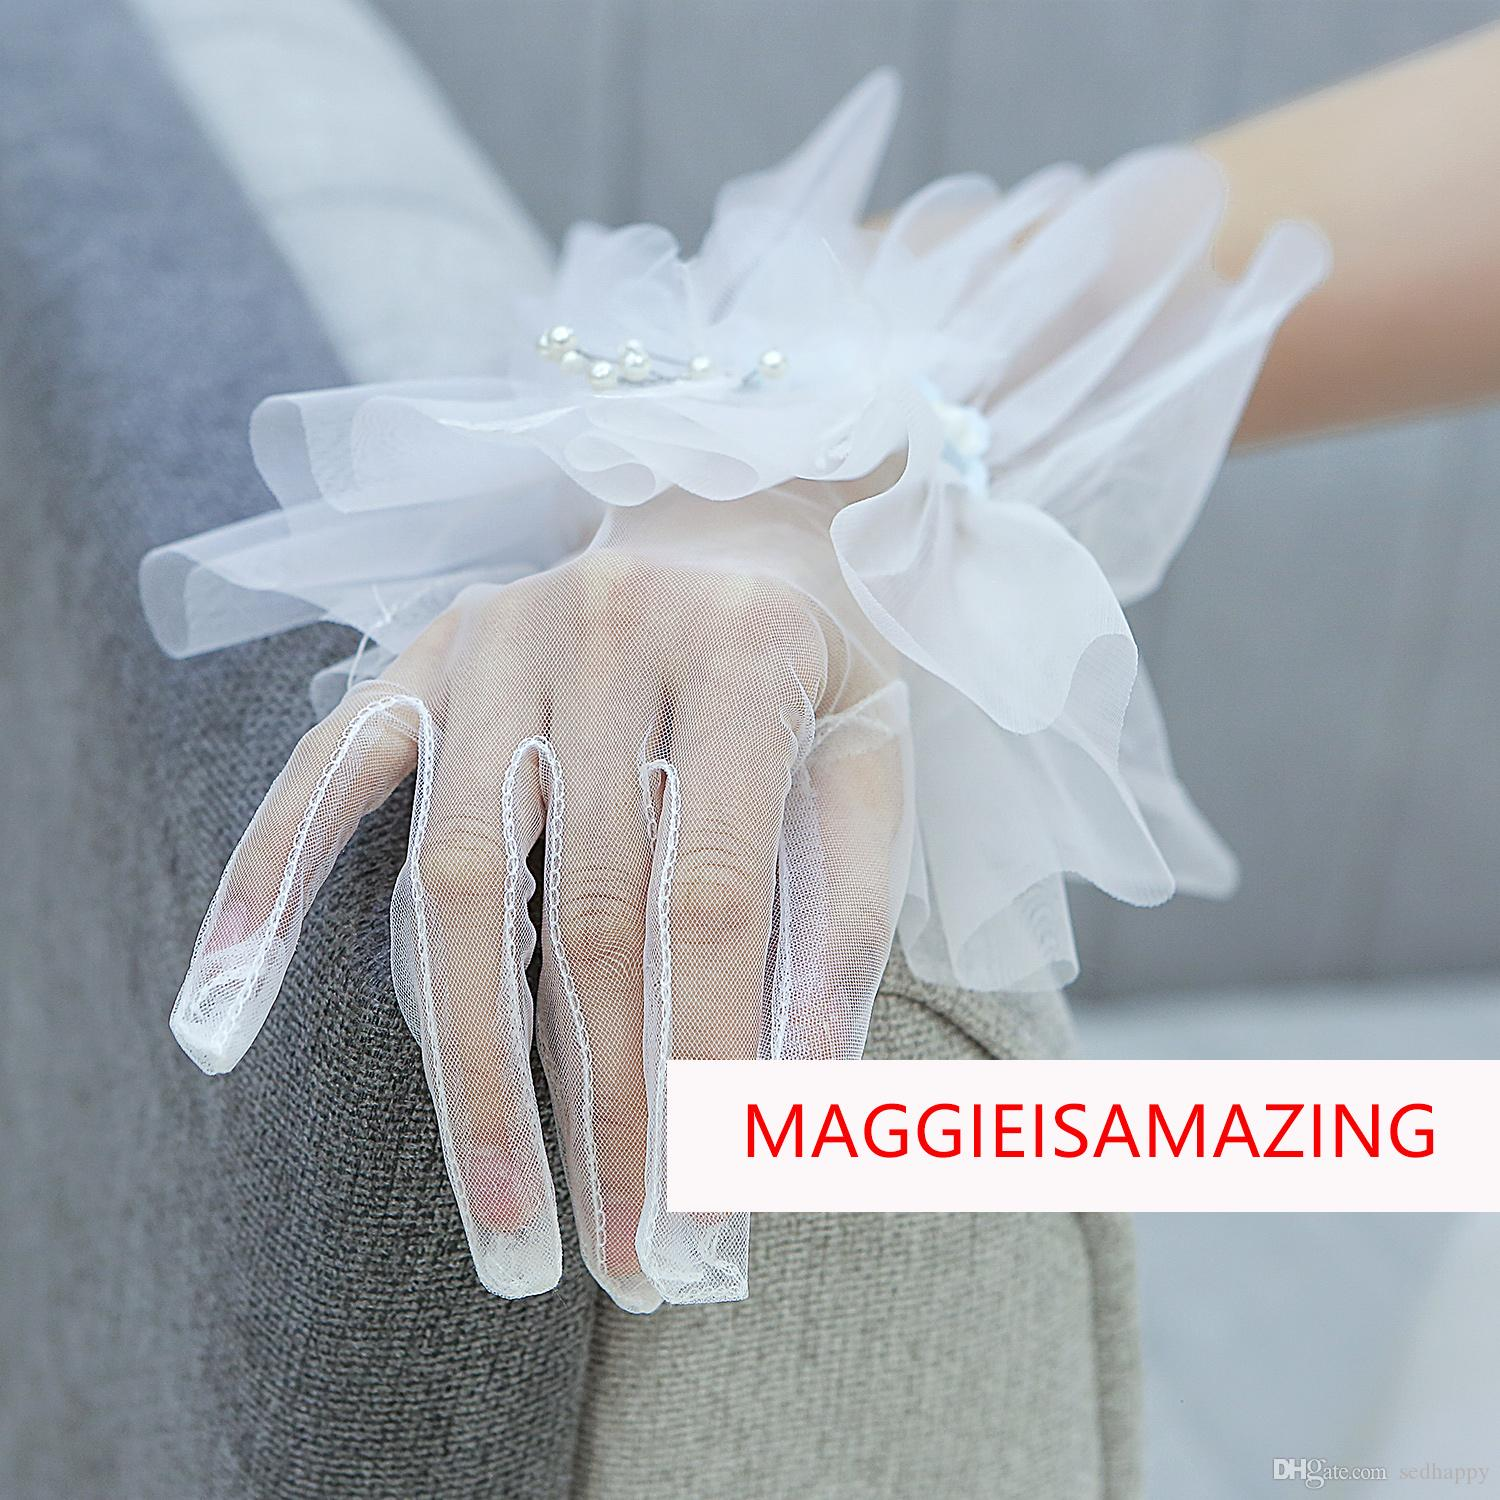 MAGGIEISAMAZING Wholesale REAL PHOTOS wrist length simple tulle applique sheer white Bridal Gloves Bridal Accessories XWZ00119